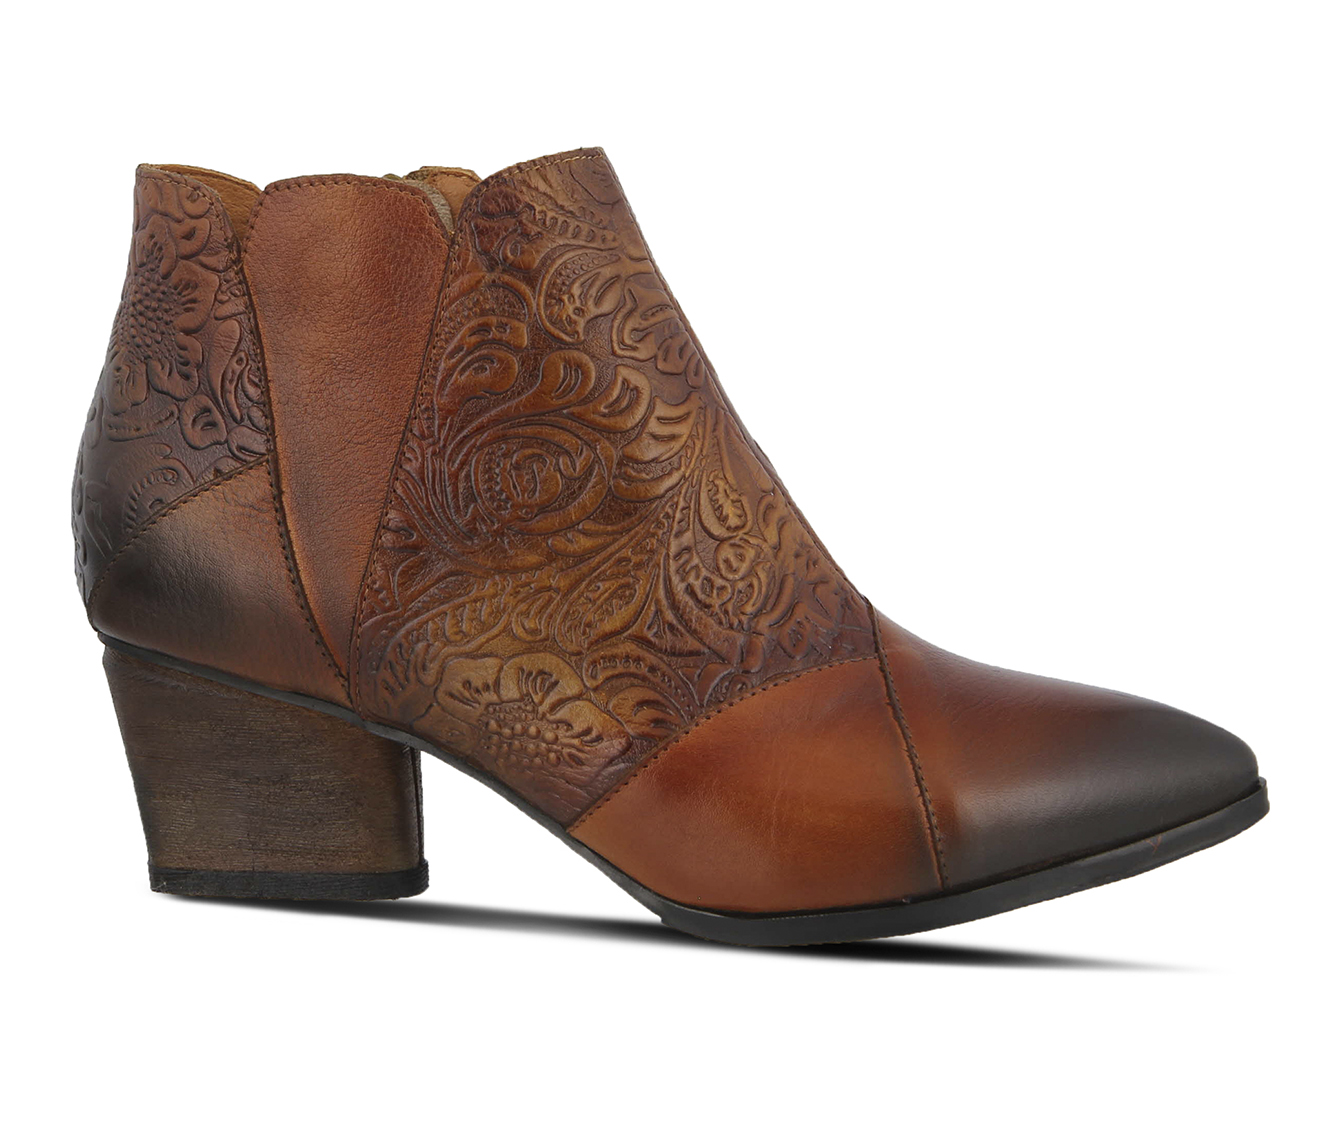 L'Artiste Melodie Women's Boots (Brown Leather)